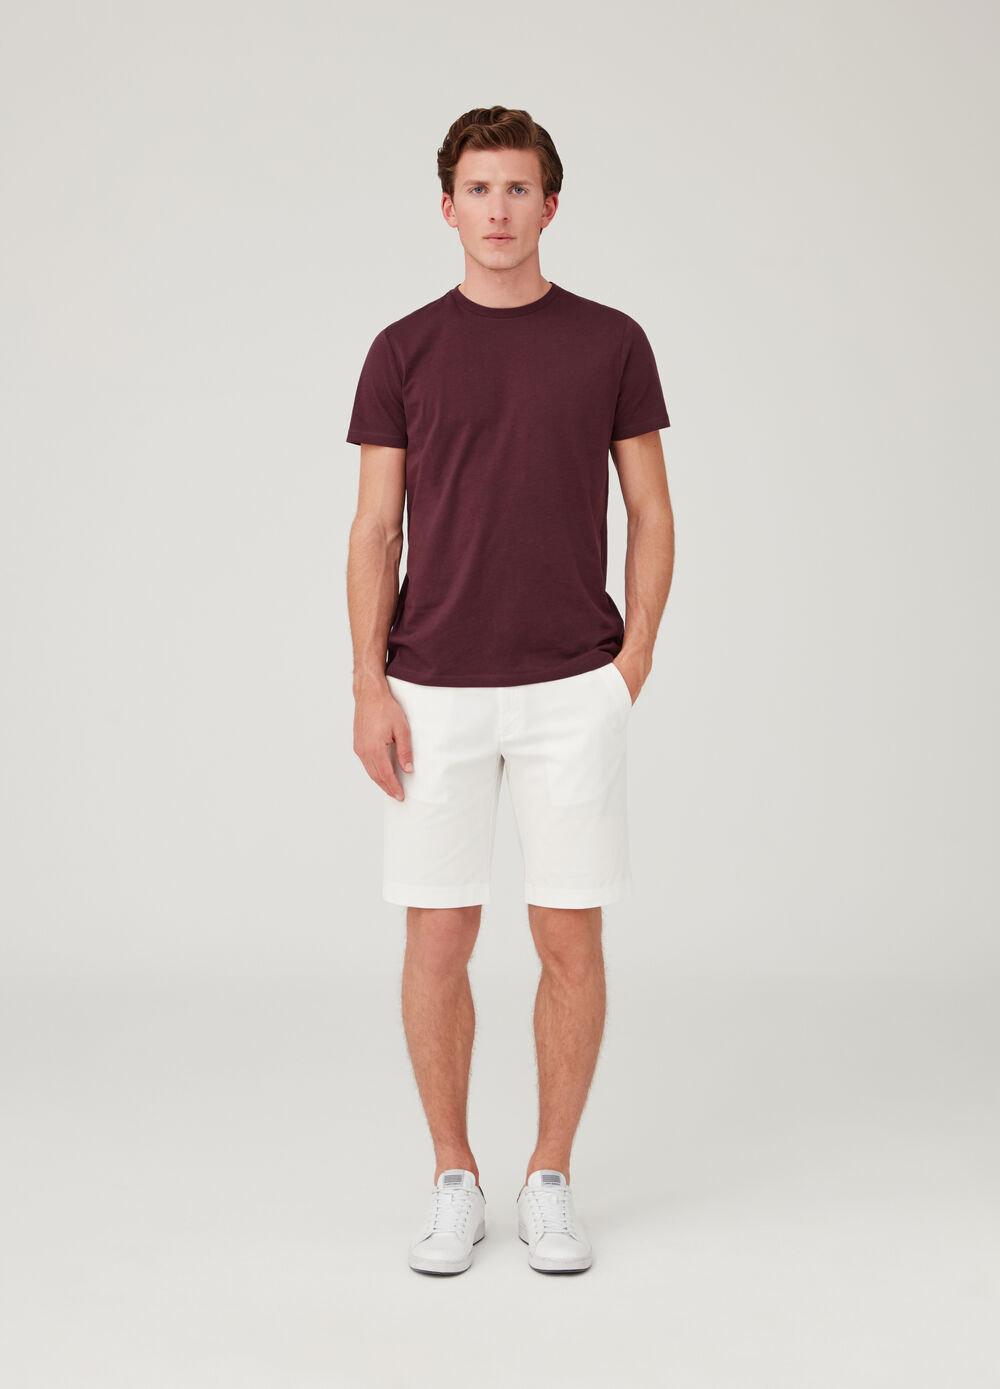 Shorts chinos regular fit cinco bolsillos